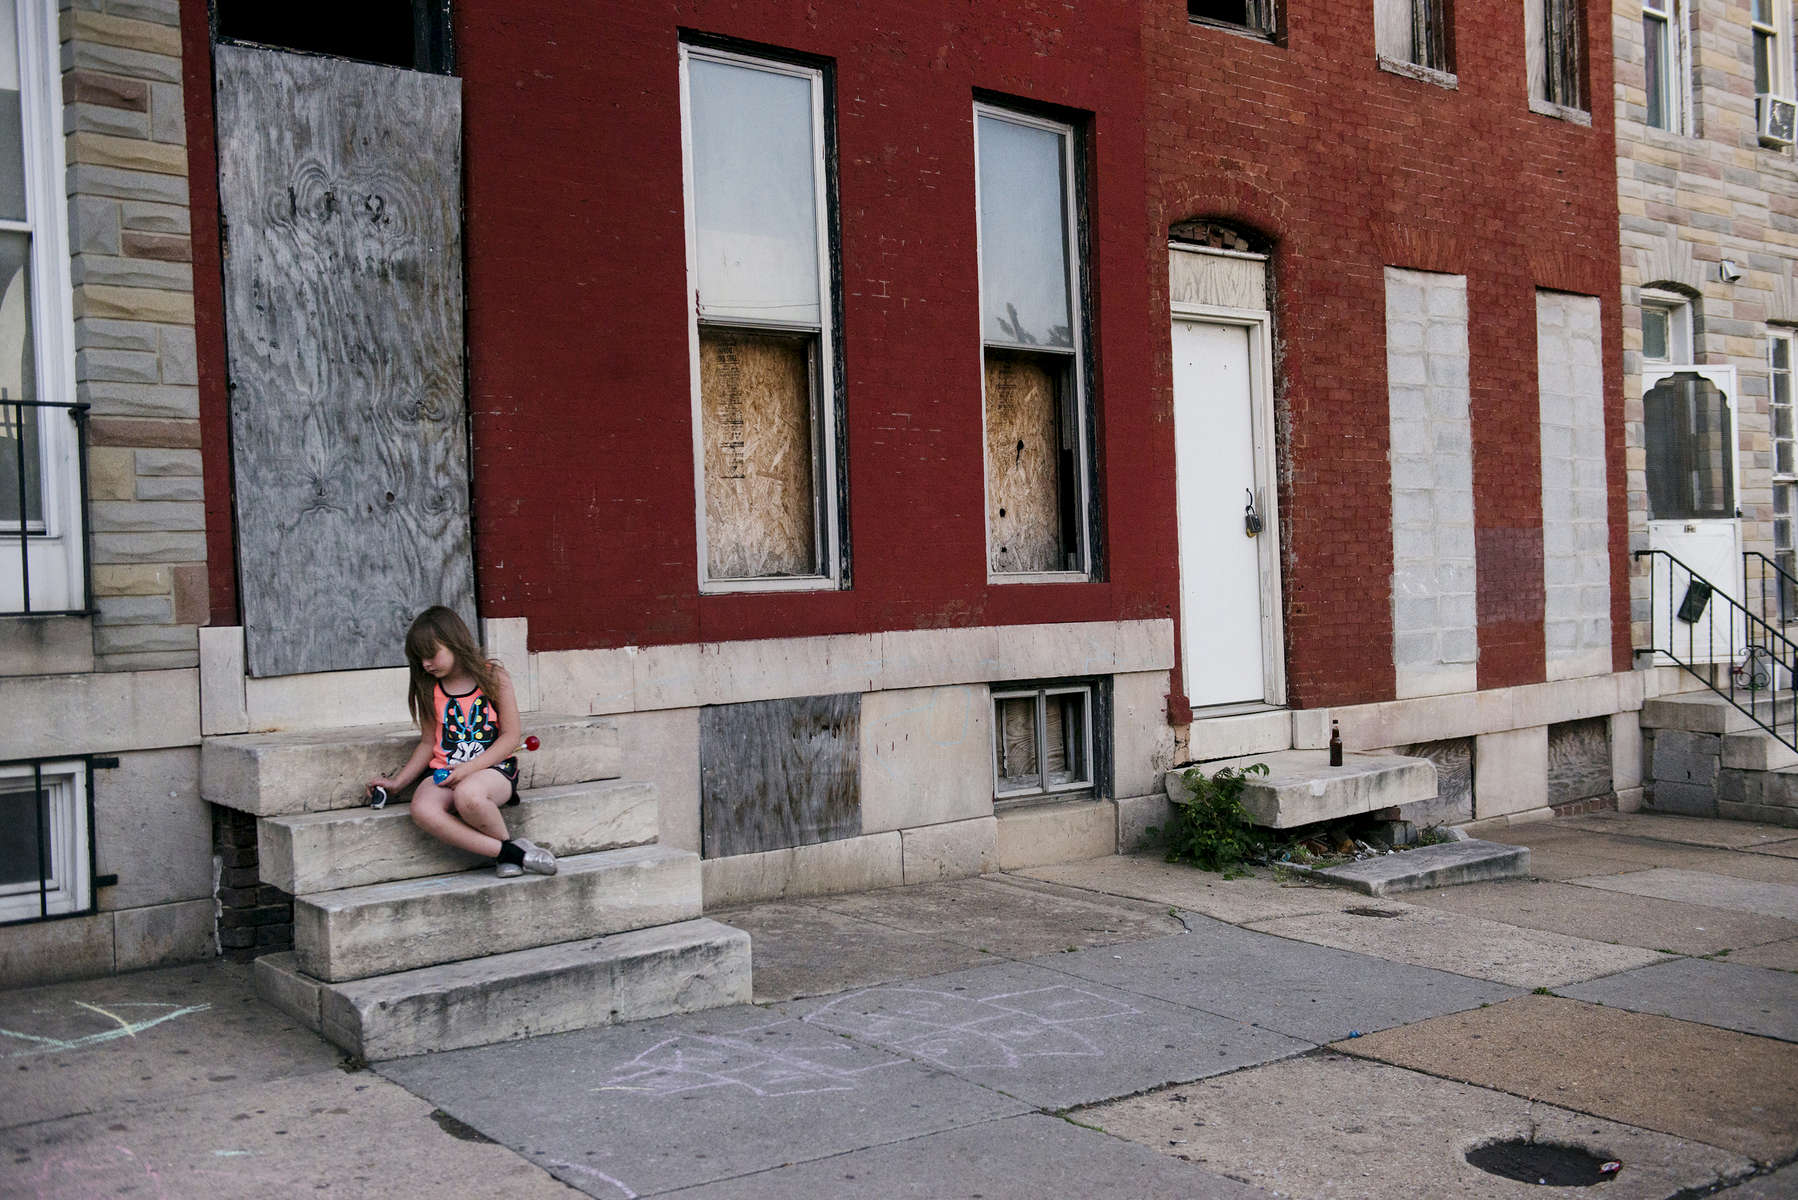 BALTIMORE, MD-  MAY 10:  Emily Painter, 7, plays in front of vacant row houses next to her home in the West side of Baltimore on Sunday, May 10, 2015 in Baltimore, MD. (Photo by Amanda Voisard/For the Washington Post)